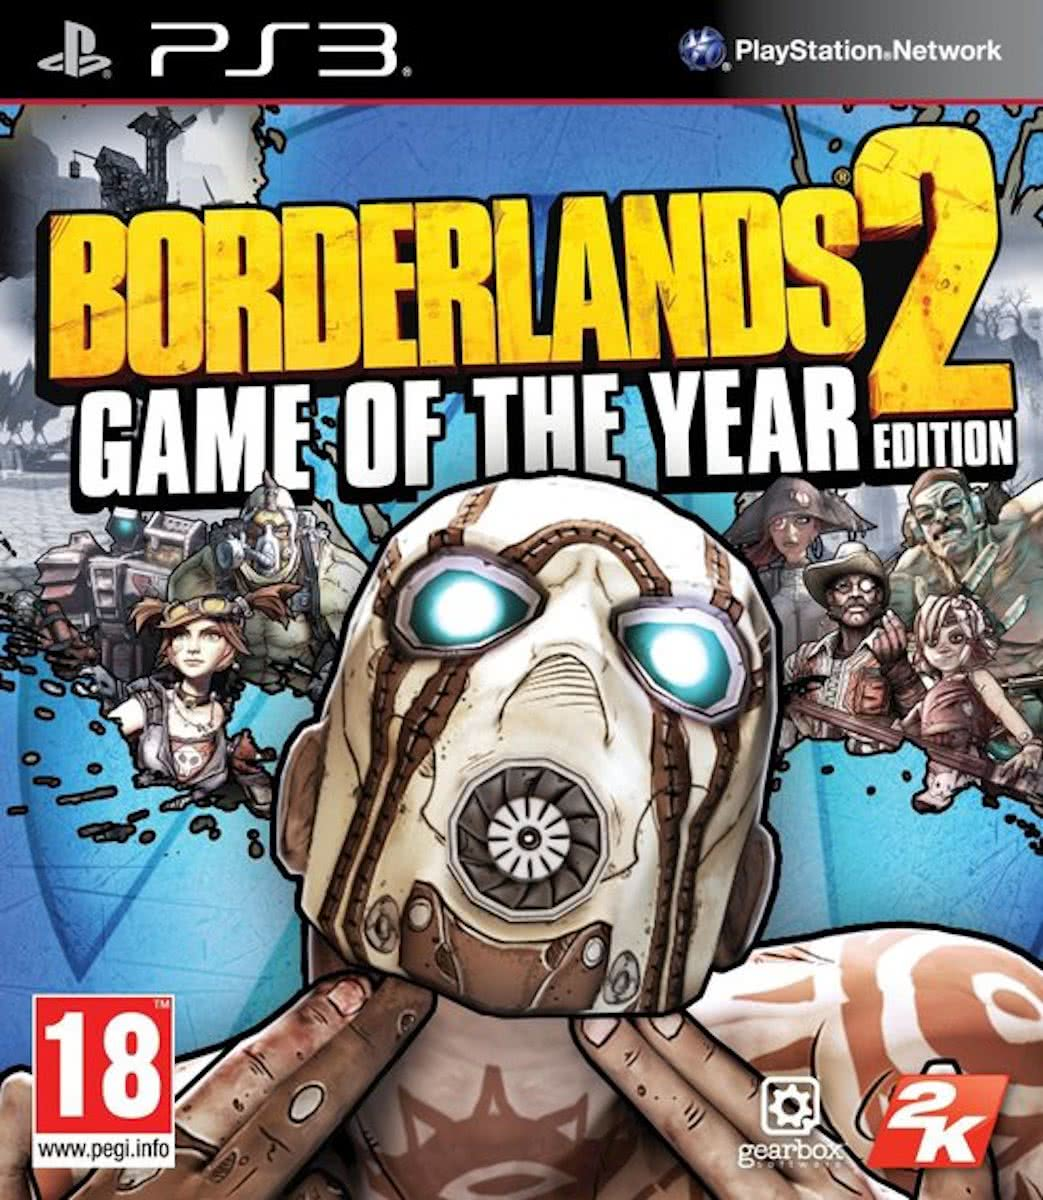 Borderlands 2 - Game of the Year Edition /PS3